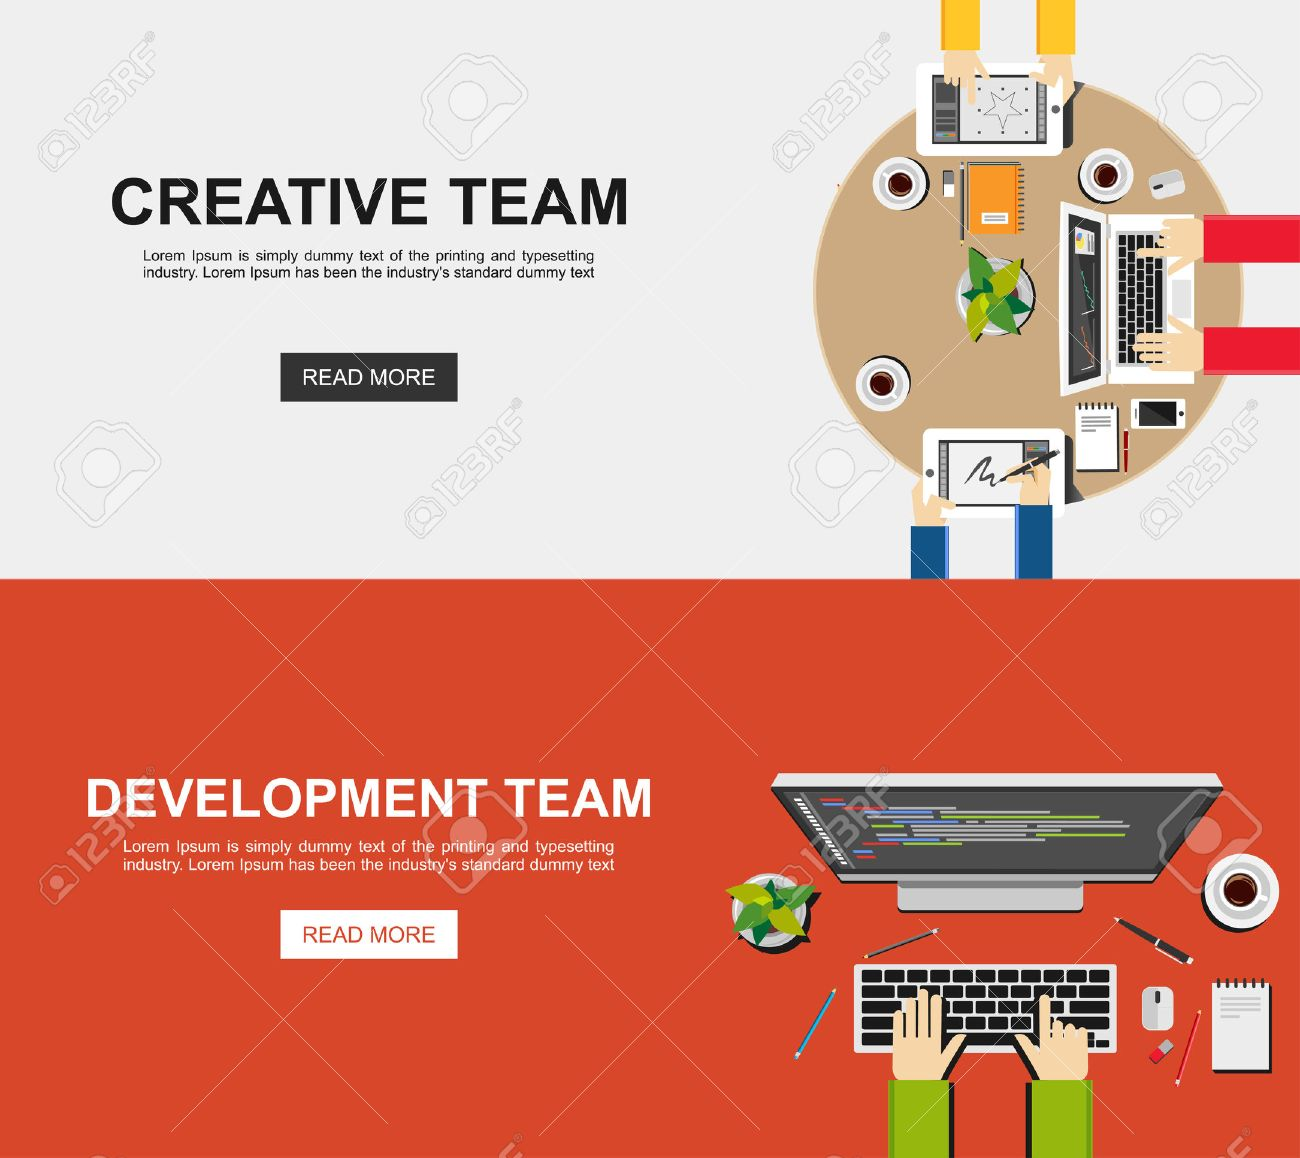 Banner Illustration Of Creative Team And Development Team Flat Royalty Free Cliparts Vectors And Stock Illustration Image 41627193